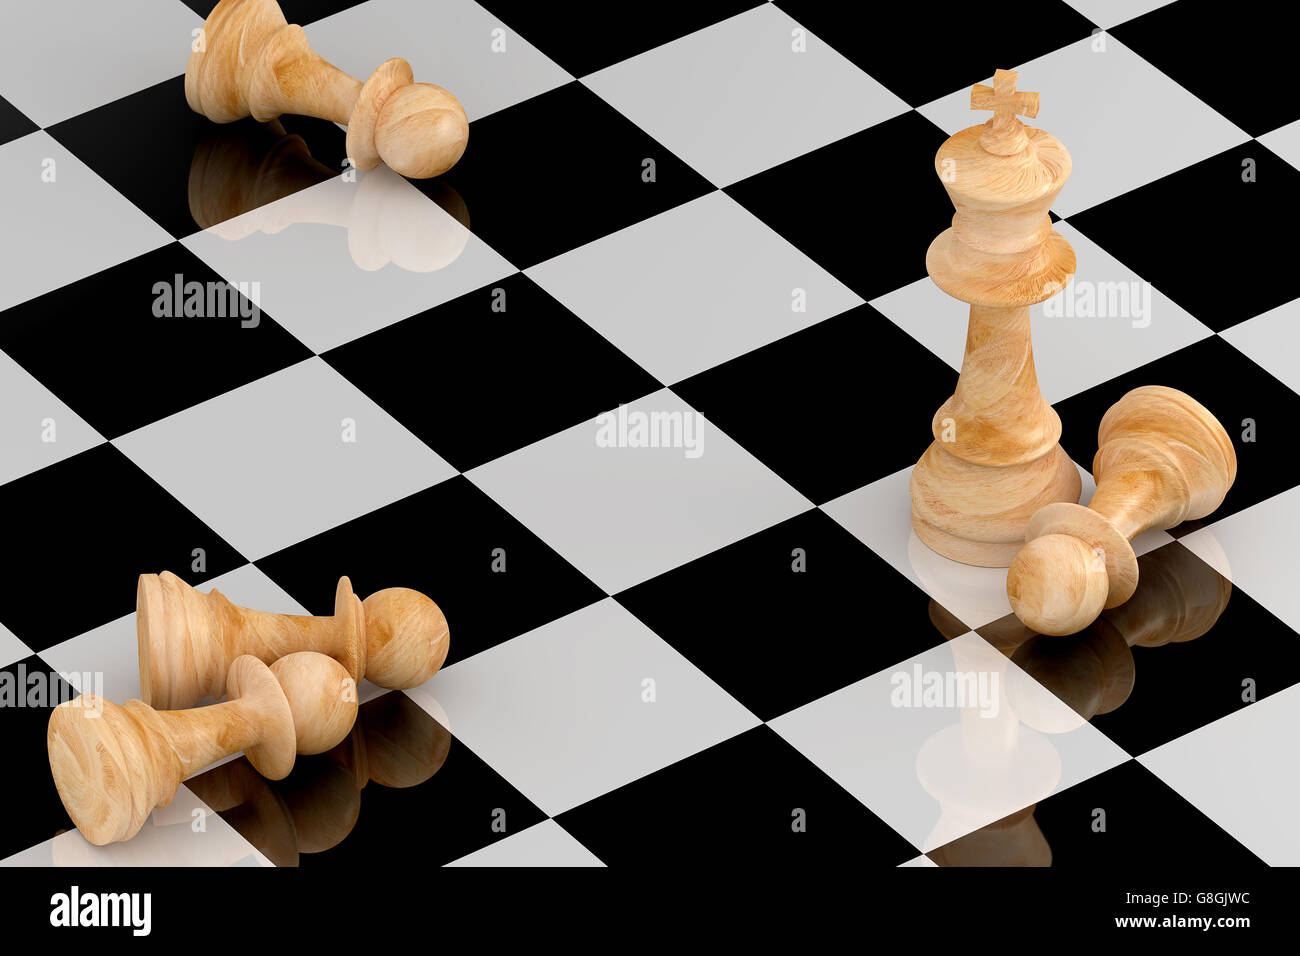 Achievement business concept illustrated by chess in 3D rendering. - Stock Image